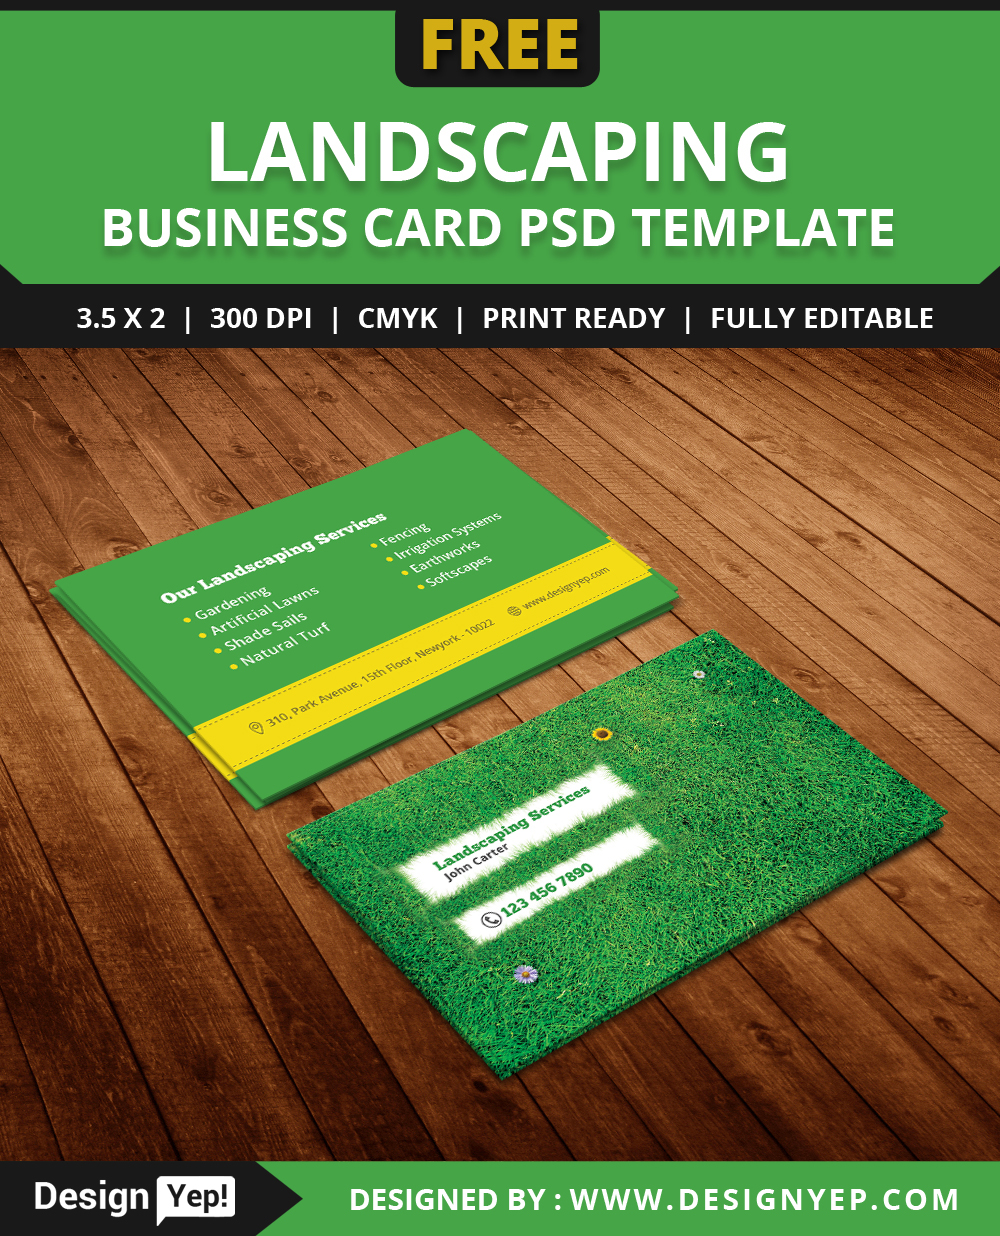 Free landscaping business card template psd on behance colourmoves